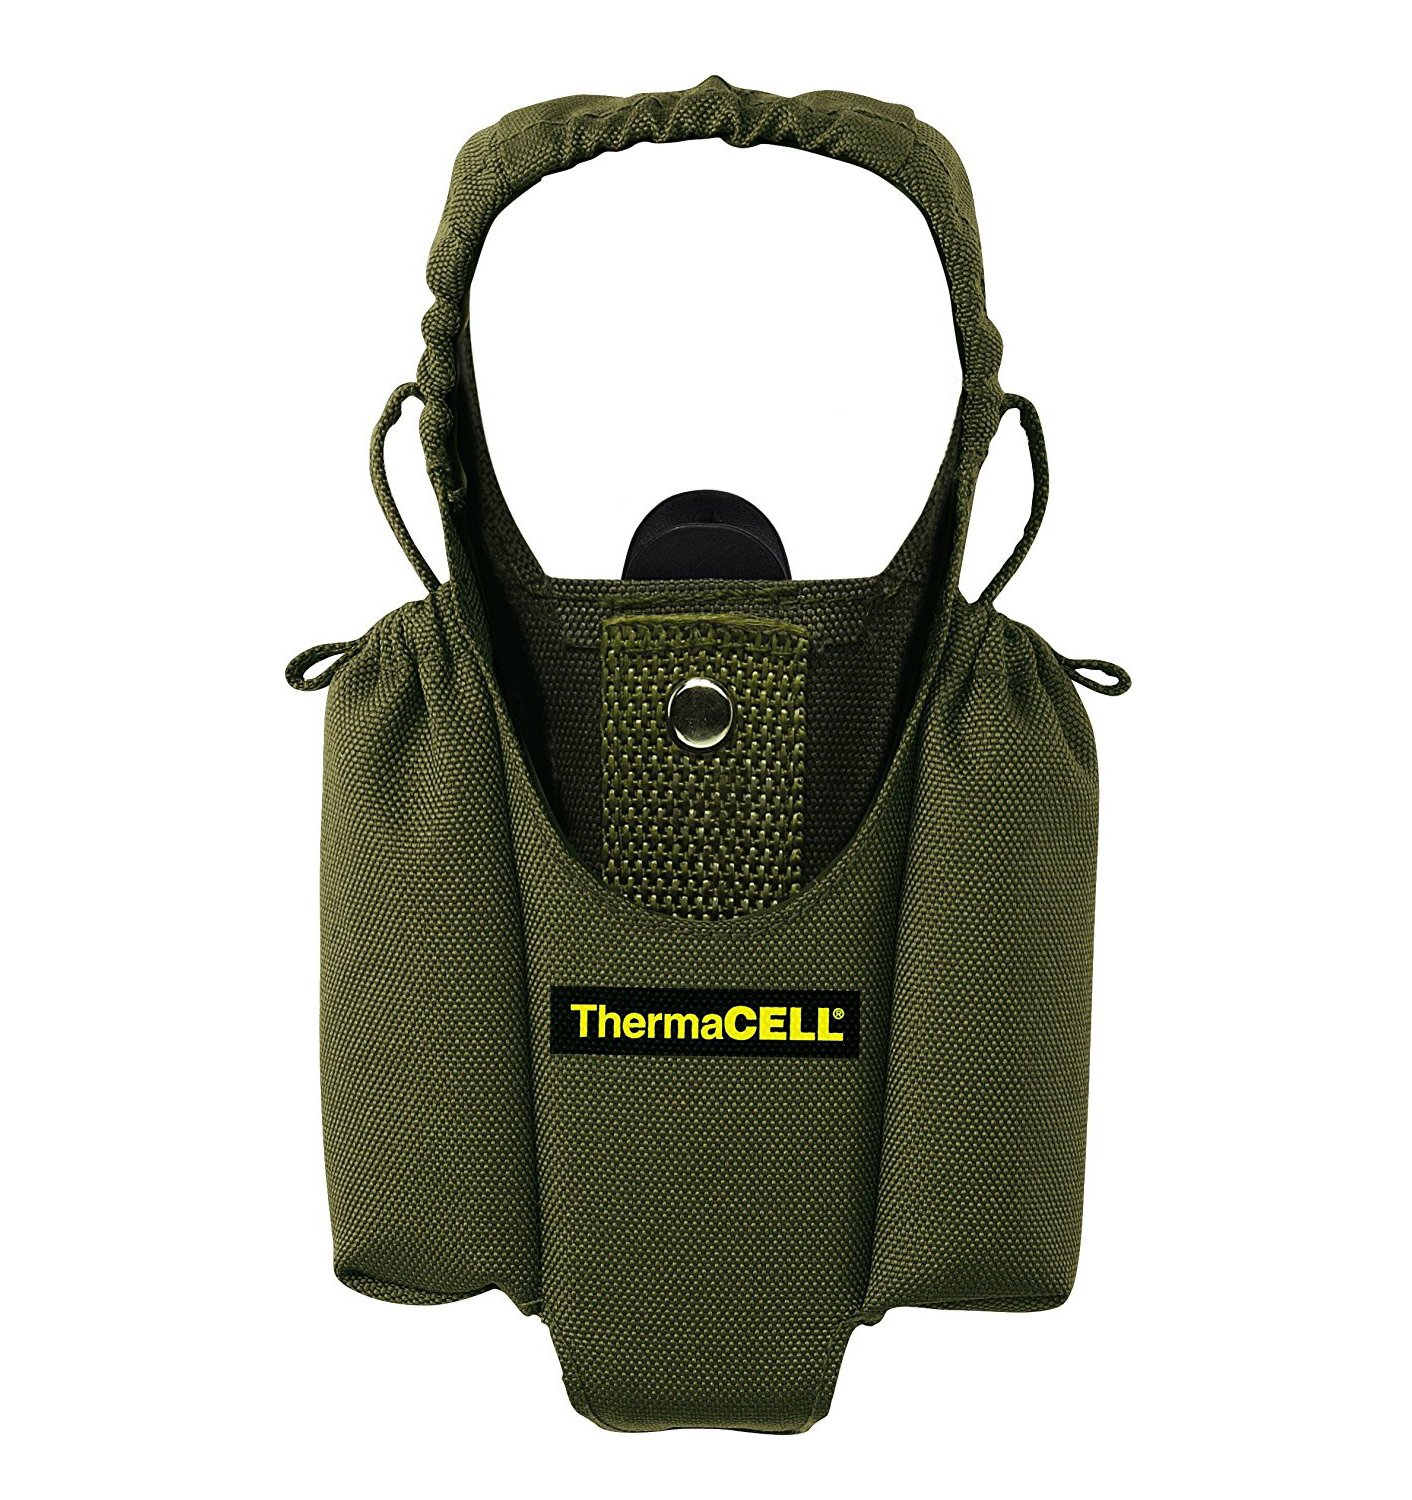 Thermacell Family Camper's Kit : 4 Mosquito Repellent Appliances (Olive), 4 Holsters, 8 Refill Packs by Thermacell (Image #3)